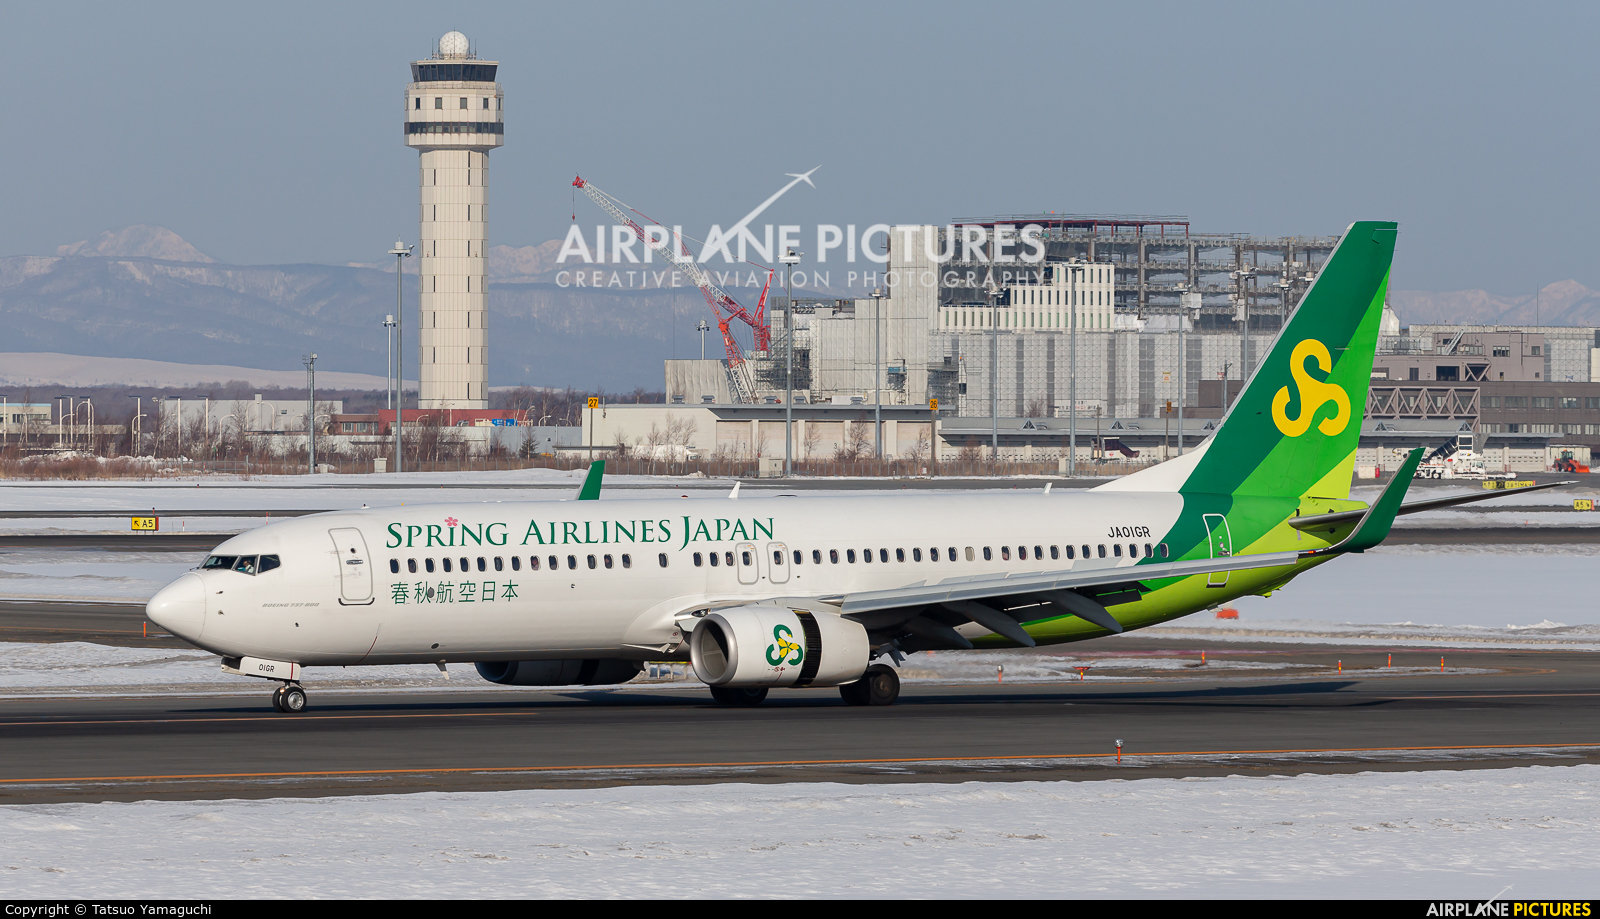 Spring Airlines Japan JA01GR aircraft at New Chitose